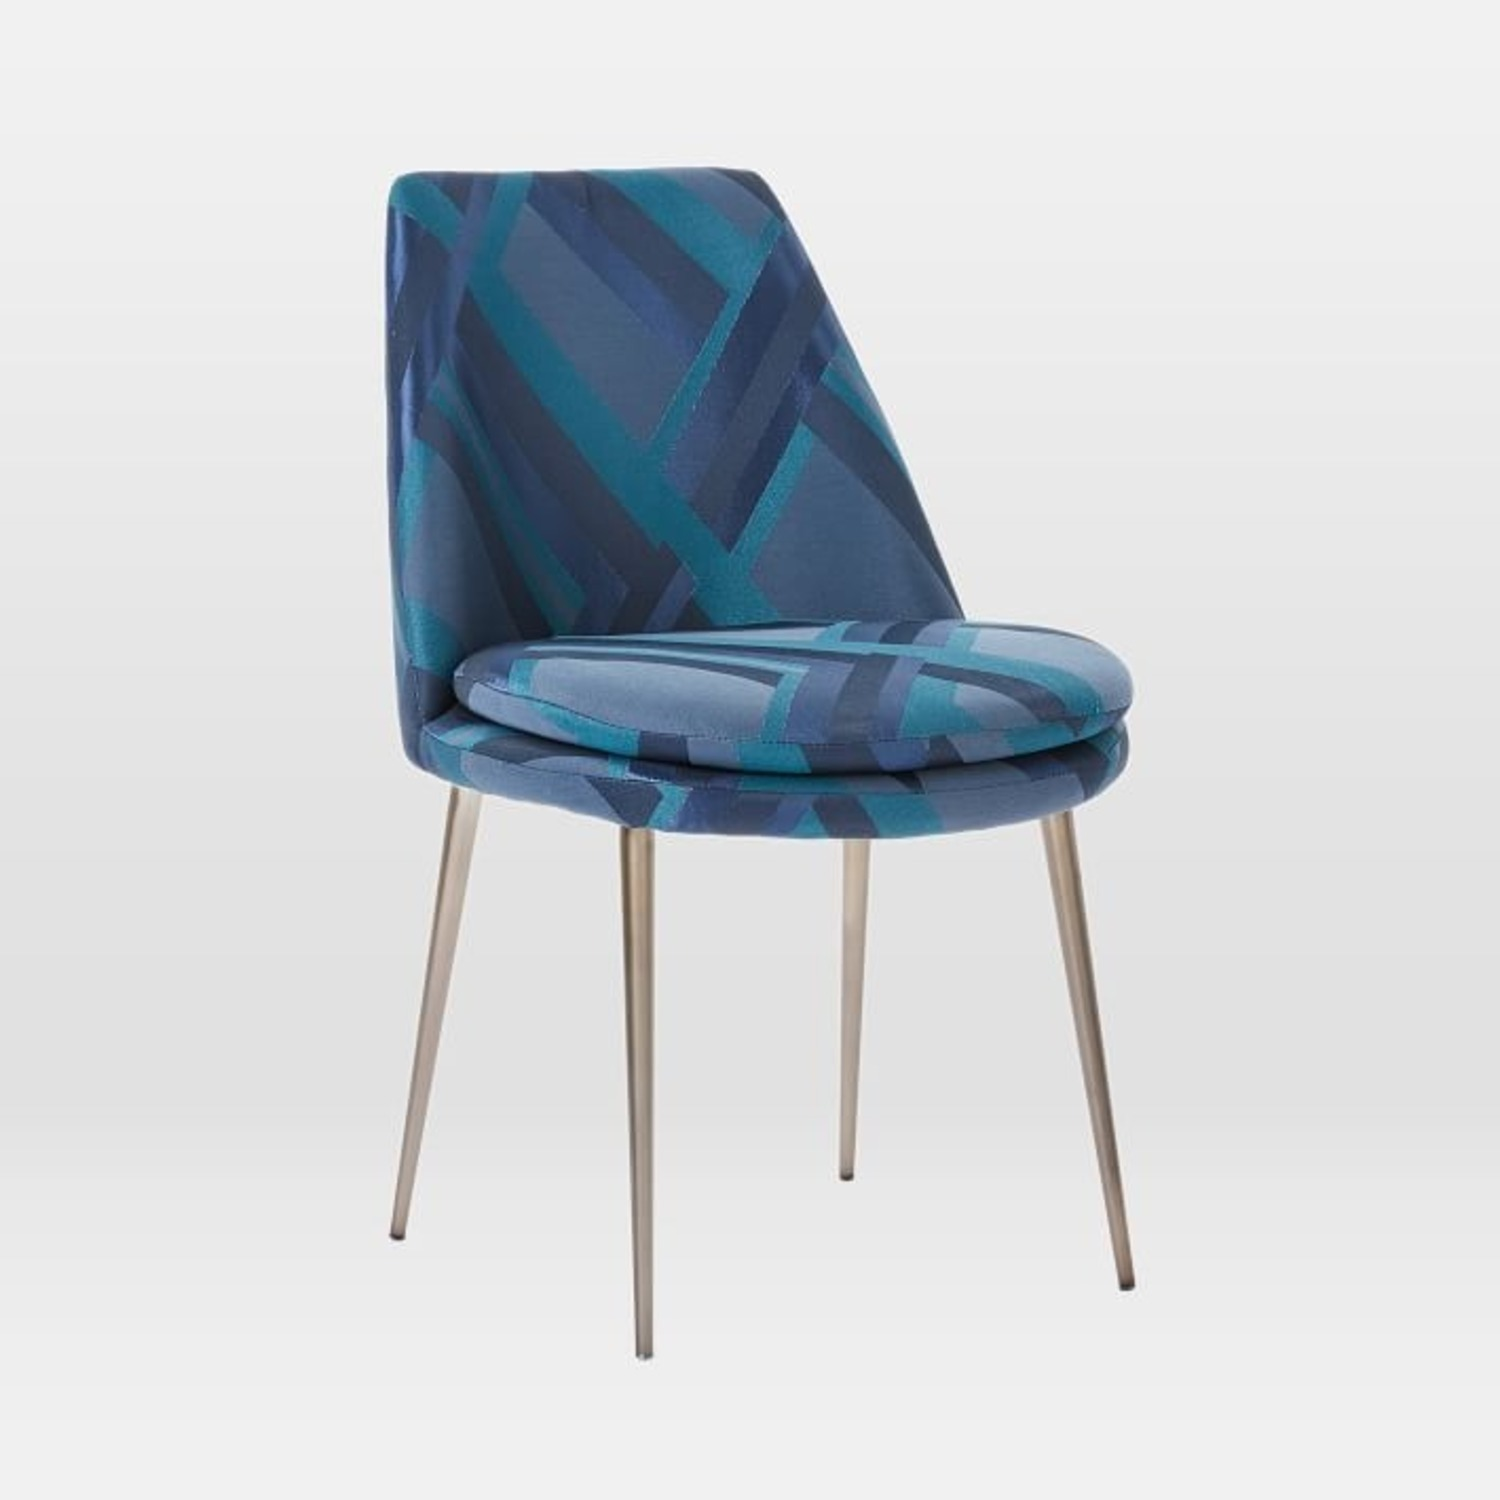 West Elm Finley Low Back Dining Chair - image-1